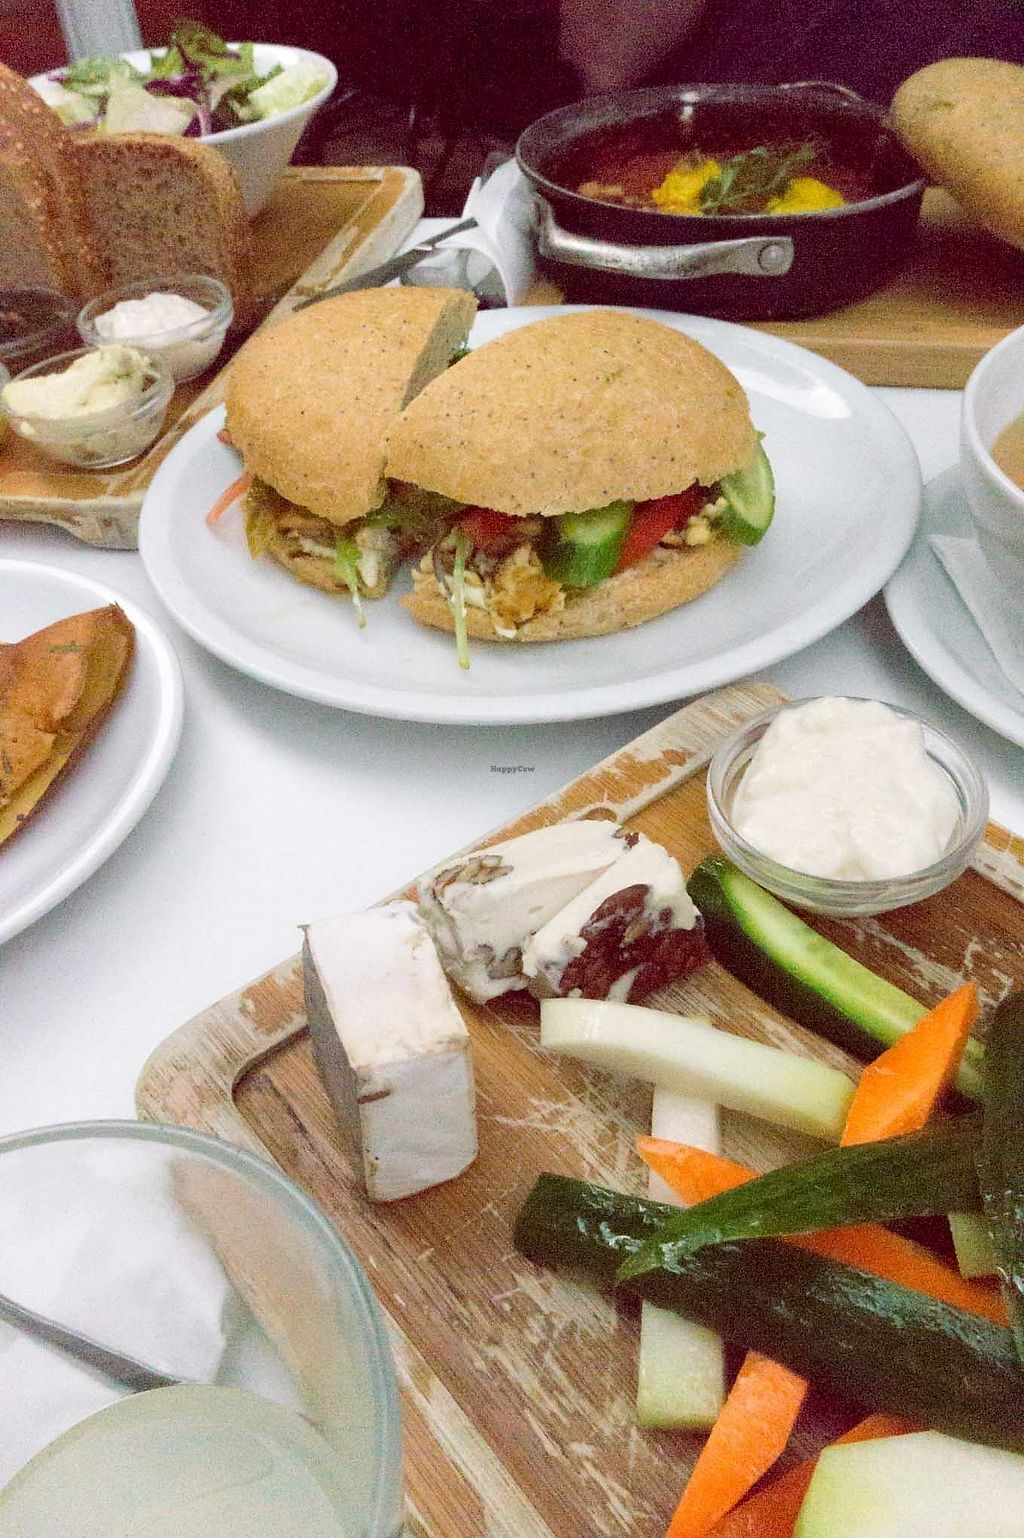 """Photo of Anastasia  by <a href=""""/members/profile/biancah"""">biancah</a> <br/>Tofu Scramble Sandwich, vegan Cheese Platter - so good! <br/> February 16, 2018  - <a href='/contact/abuse/image/47650/359962'>Report</a>"""